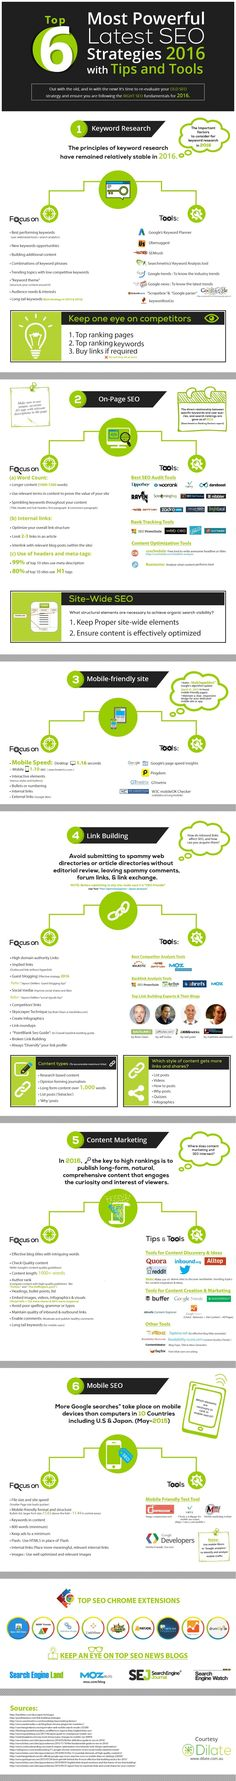 social-media-stra Infographic: Top 6 Most Powerful Latest SEO Strategies for - SEO Marketing Tool - Marketing your keywords with SEO Tool. - social-media-stra Infographic: Top 6 Most Powerful Latest SEO Strategies for 2016 with Tips and Tools Inbound Marketing, Content Marketing, Internet Marketing, Online Marketing, Media Marketing, Seo Online, Marketing Technology, Marketing Ideas, Online Jobs